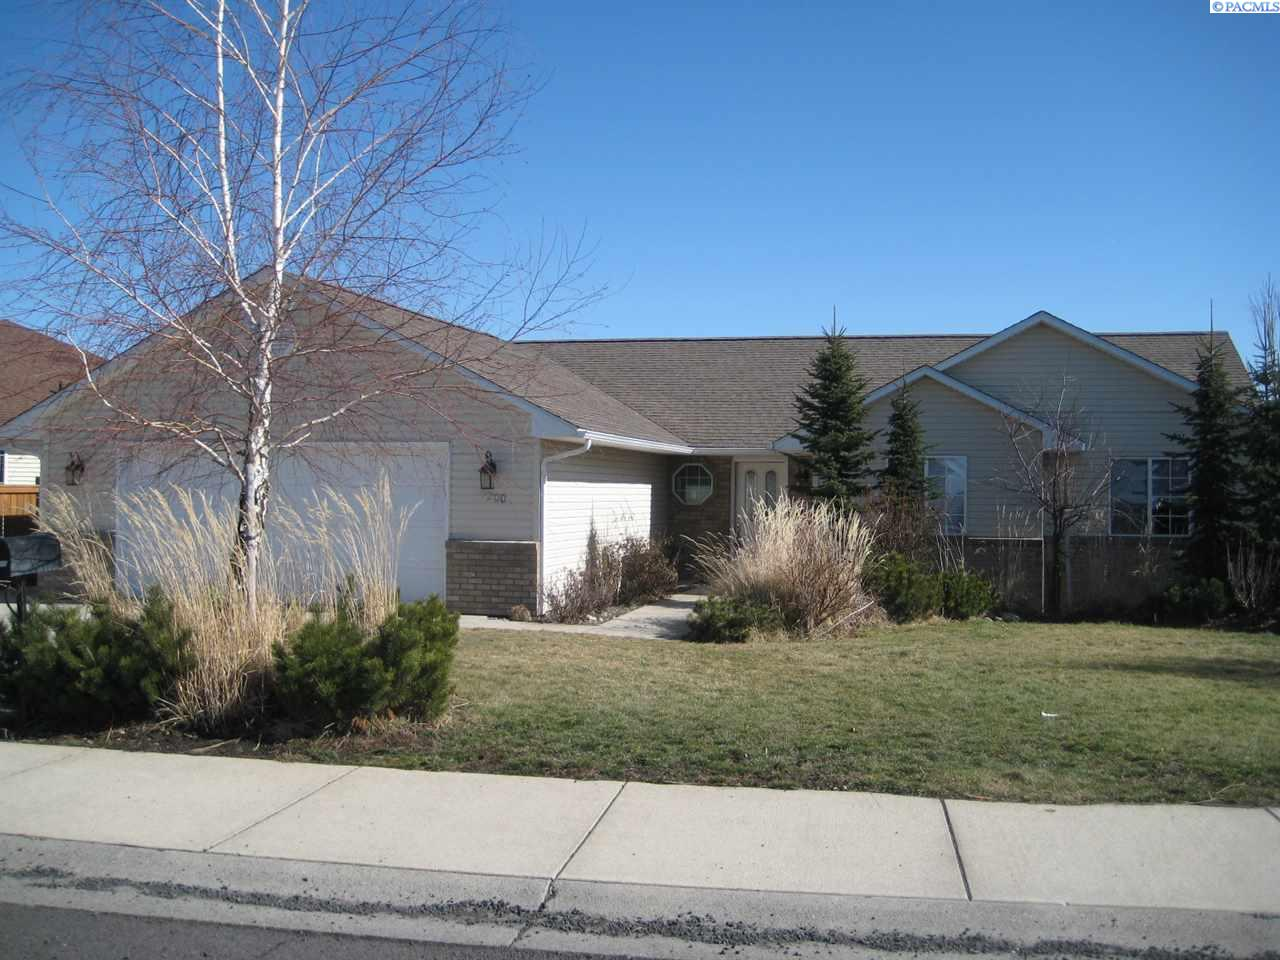 Single Family Home for Sale at 2200 NW Robert Street 2200 NW Robert Street Pullman, Washington 99163 United States